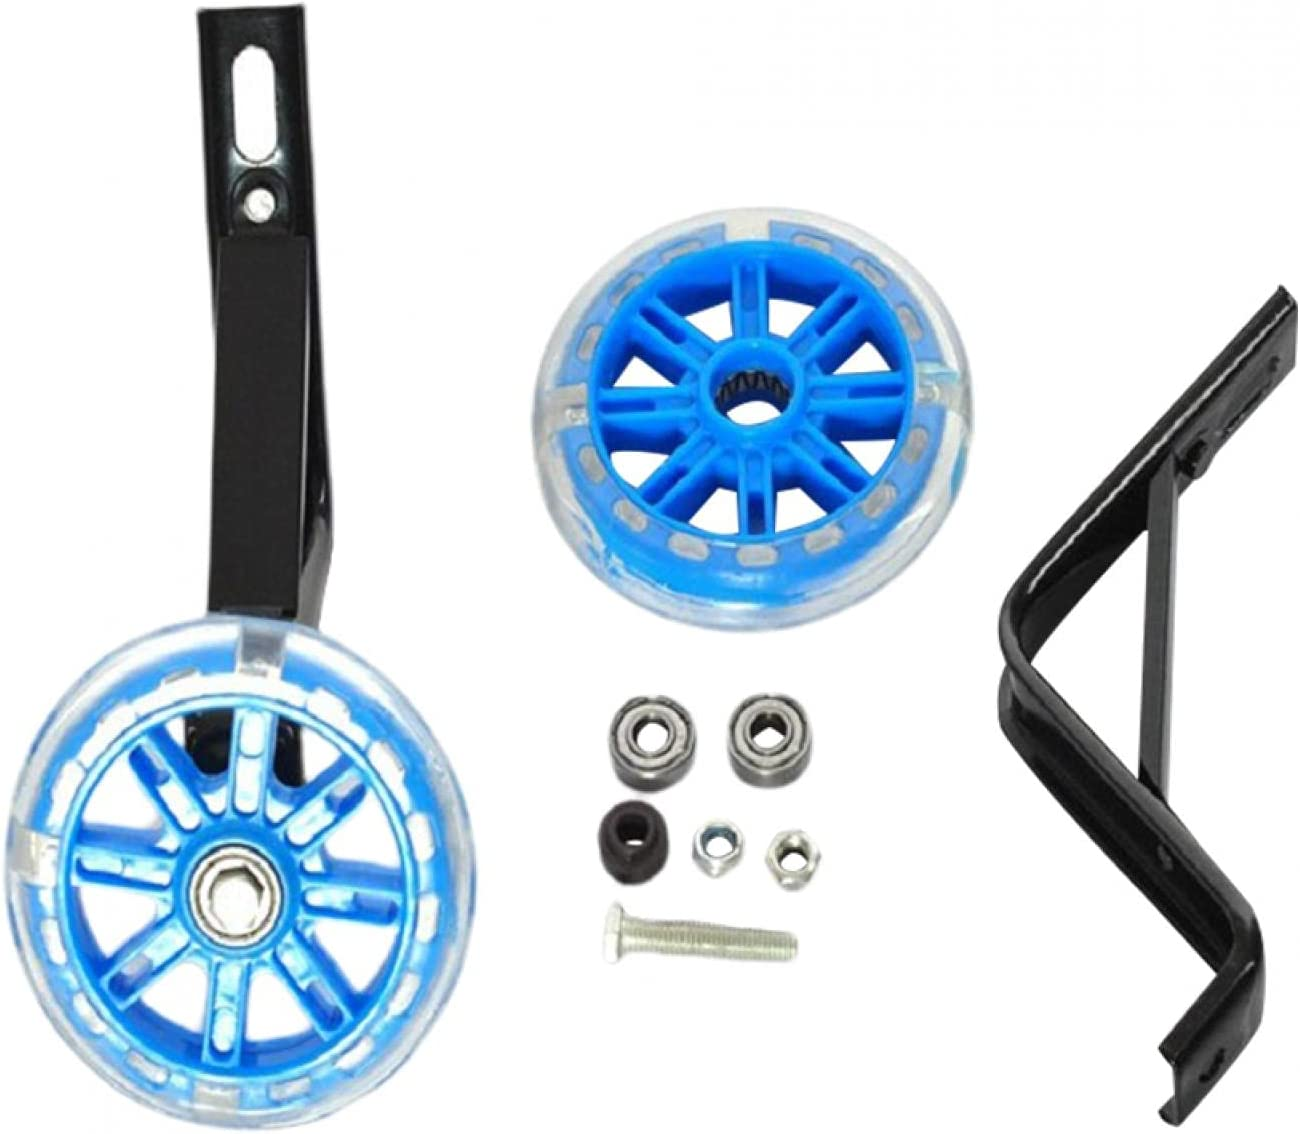 Saycker Strong Bike Training Wheels Stabilizers Miami Mall Flash Support Mo Outlet sale feature